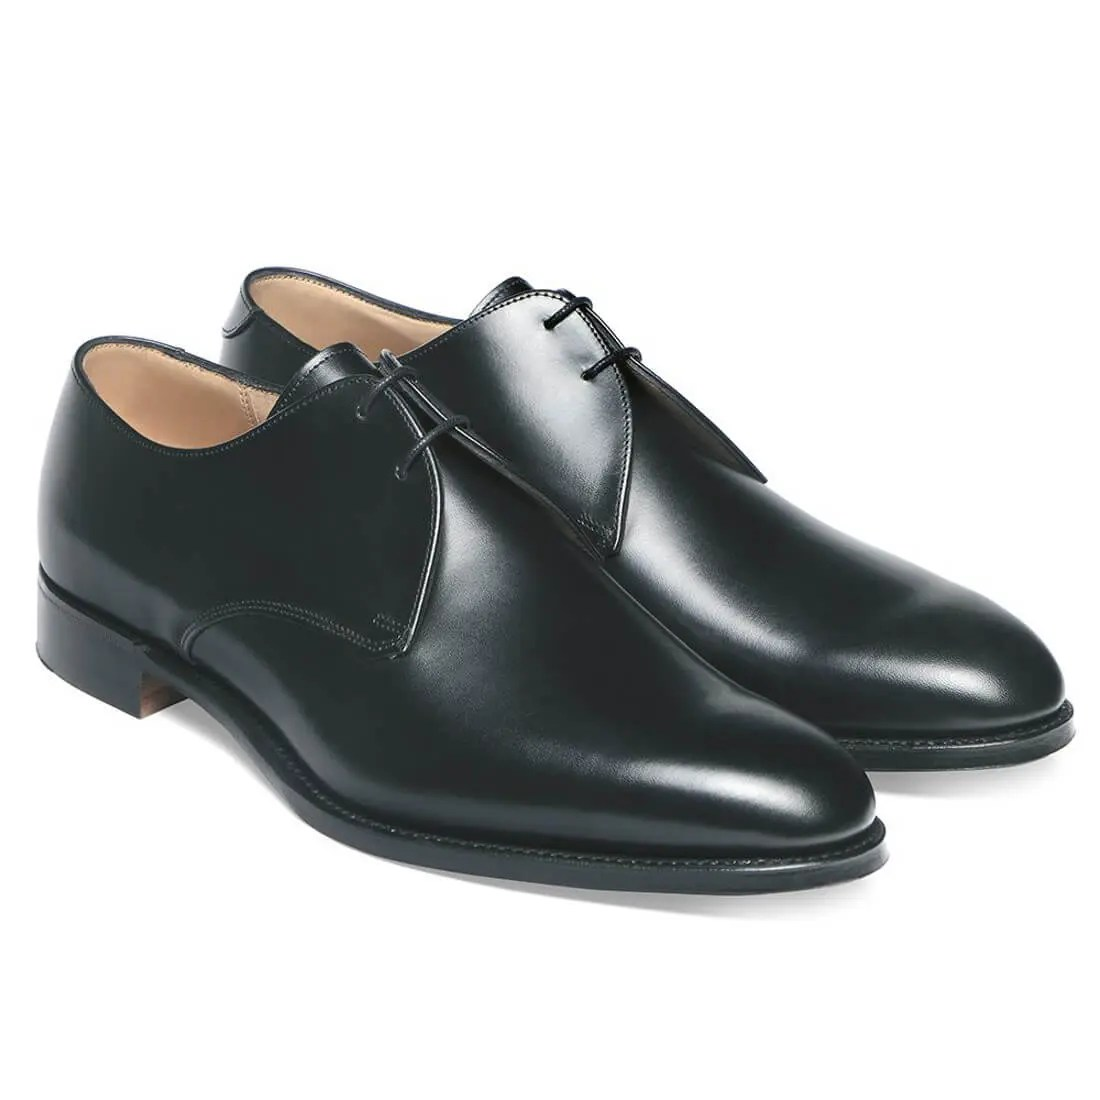 cheaney-old-classic-derby-in-black-calf-leather-p37-1286_zoom-2